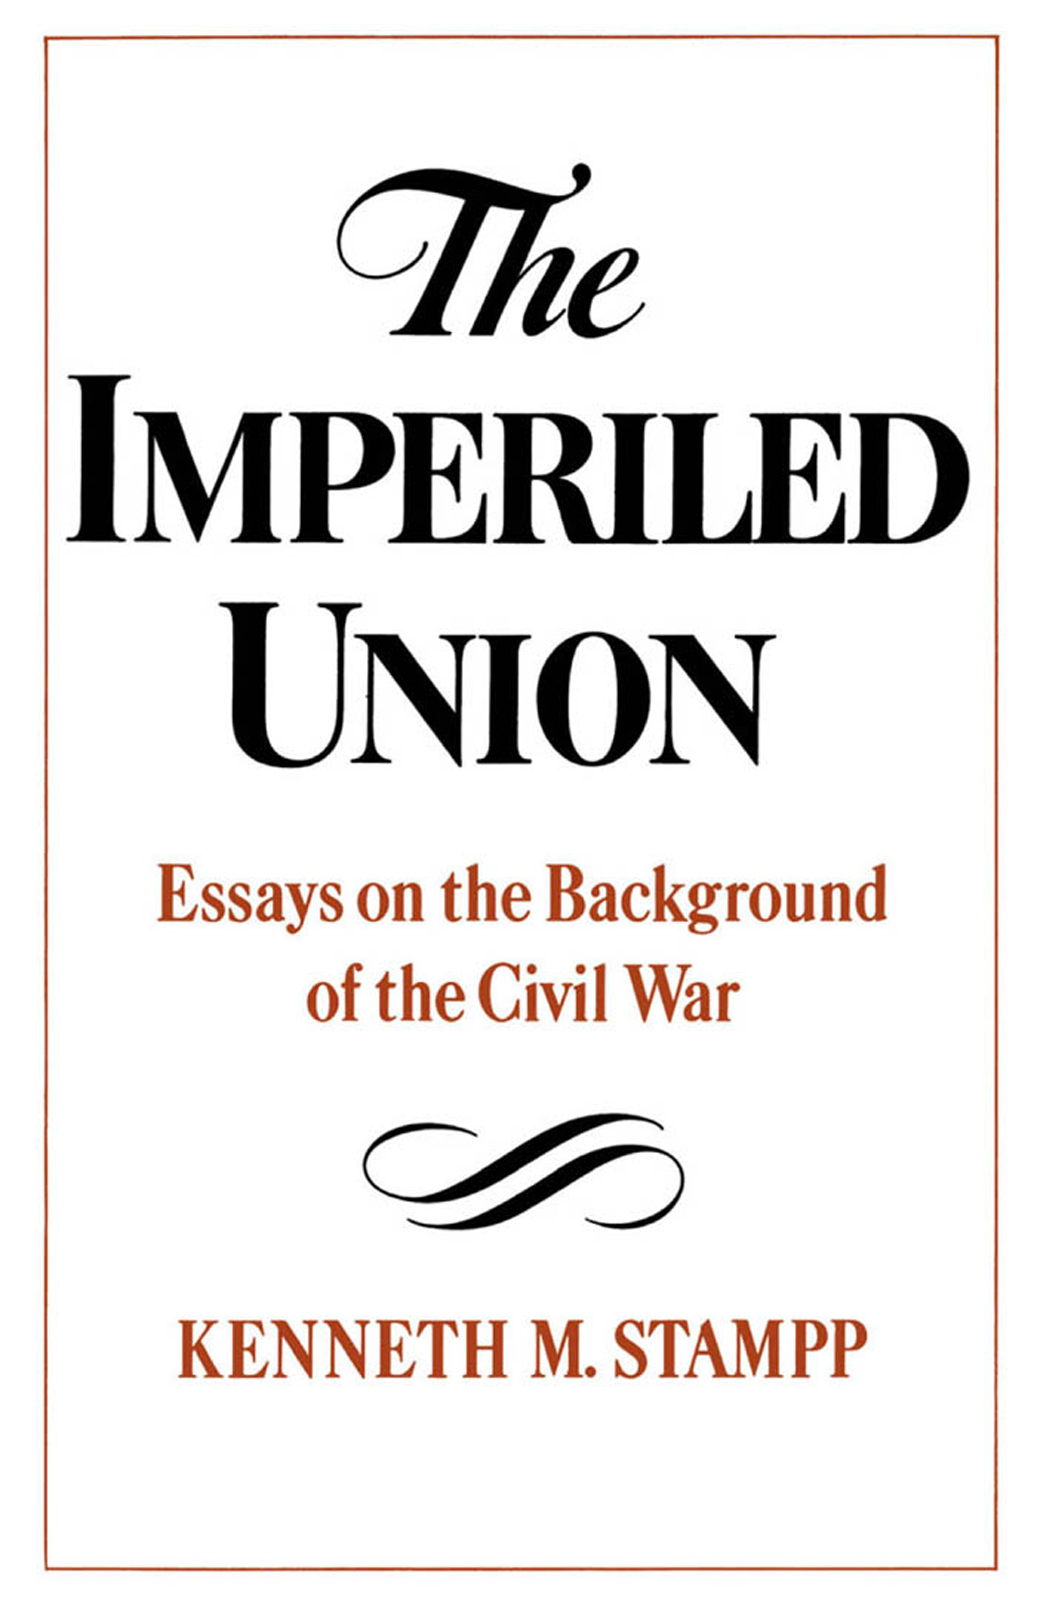 The Imperiled Union:Essays on the Background of the Civil War